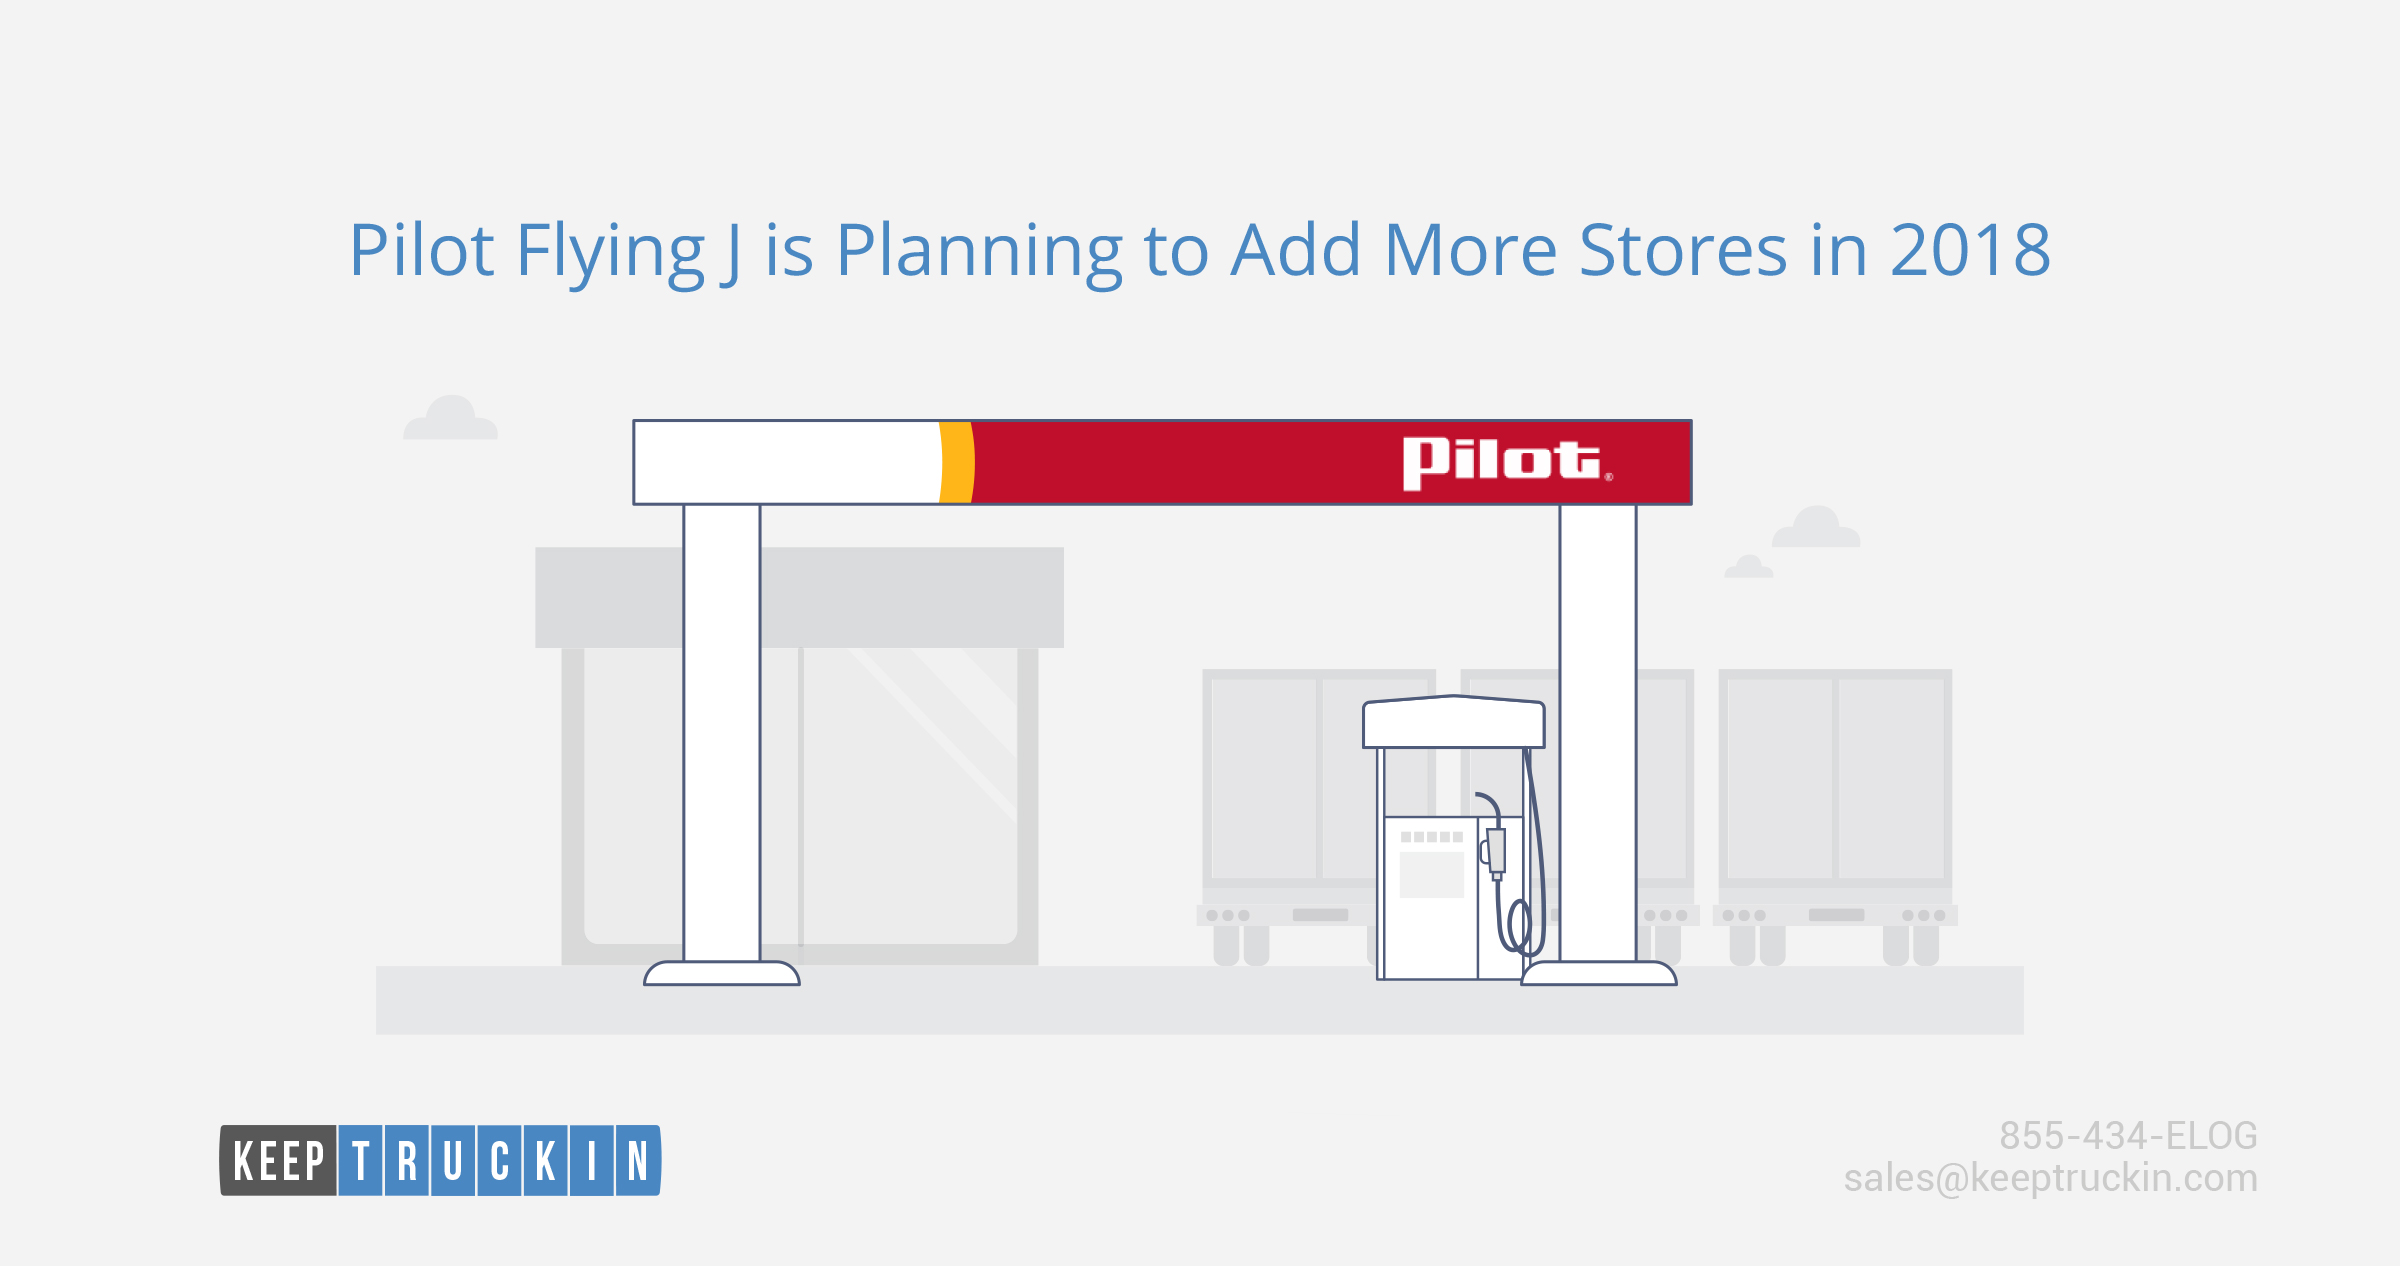 Pilot Flying J is planning to add more stores in 2018